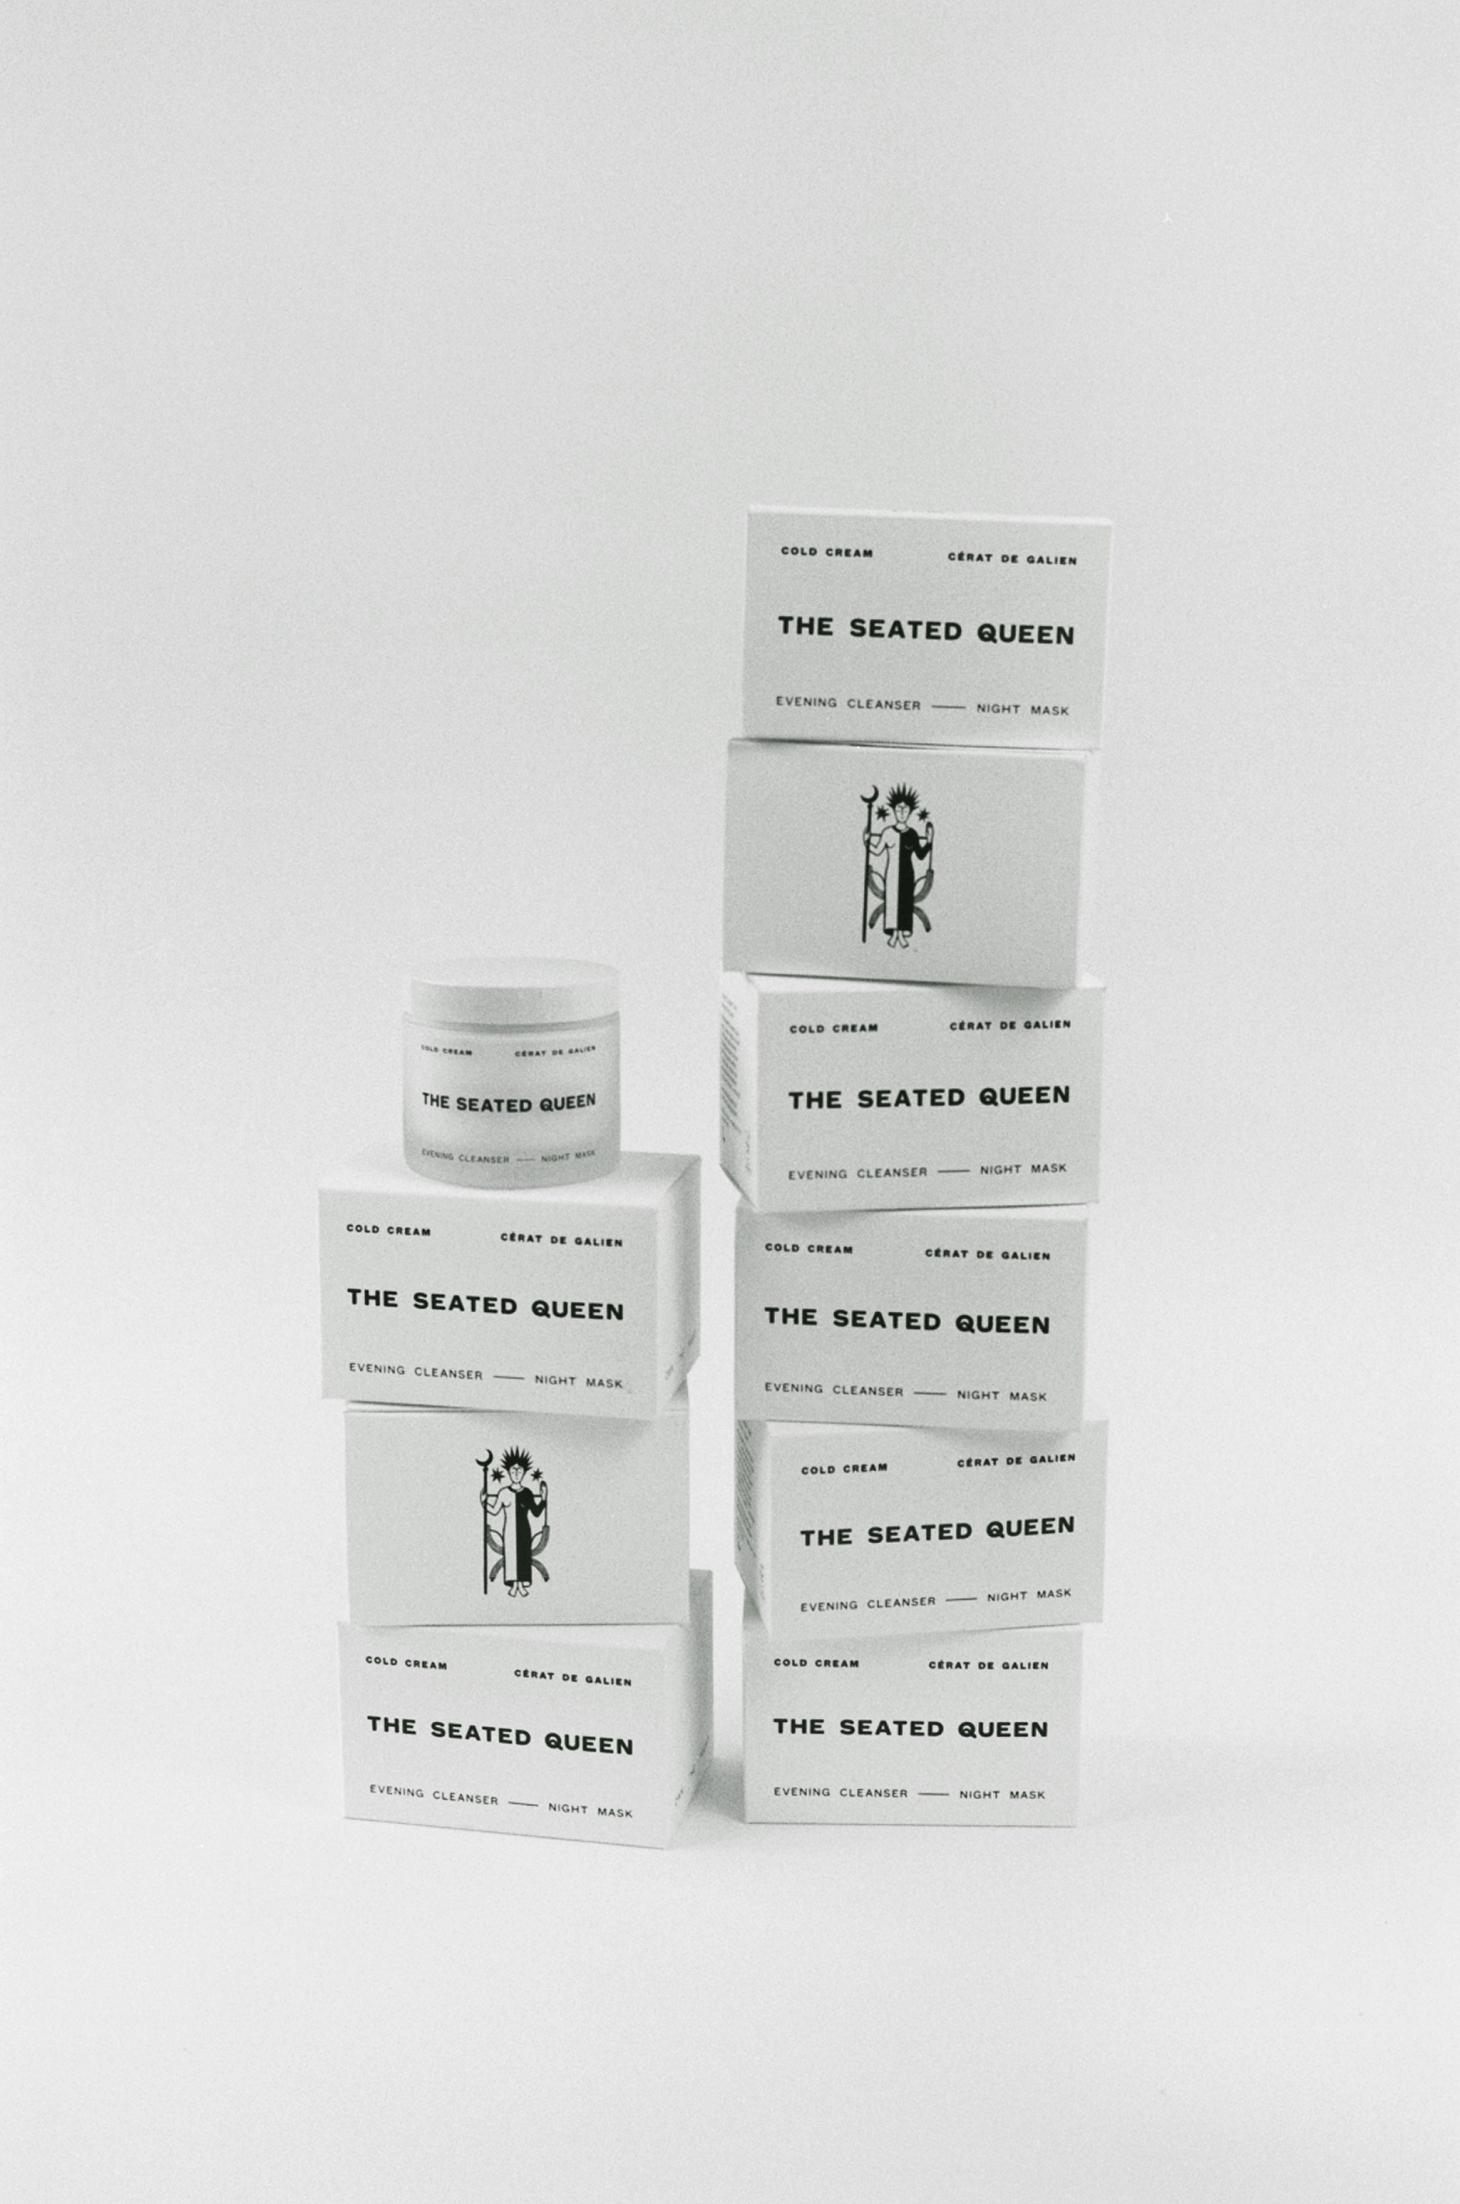 The Seated Queen cold cream in white packaging against grey background